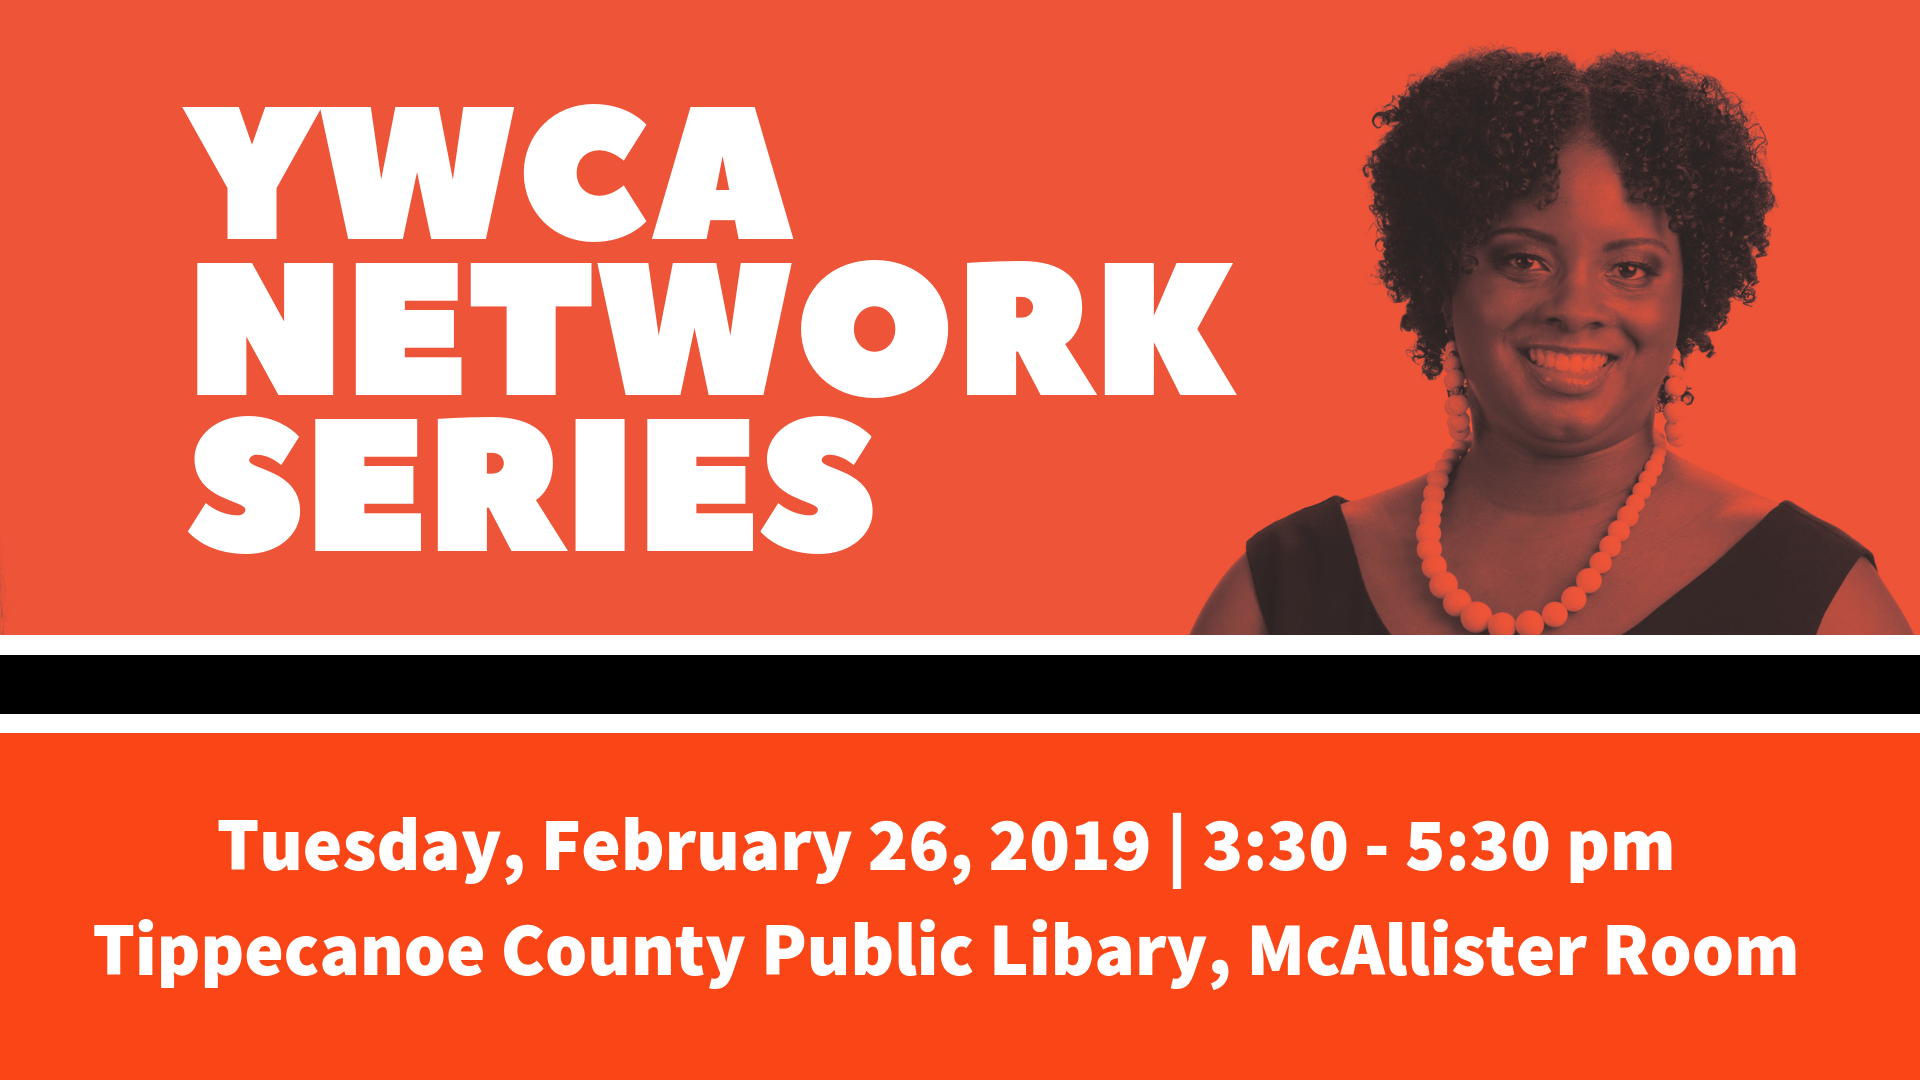 """YWCA Network Series"" in white alongside a photo of a Black woman in front of an orange background"